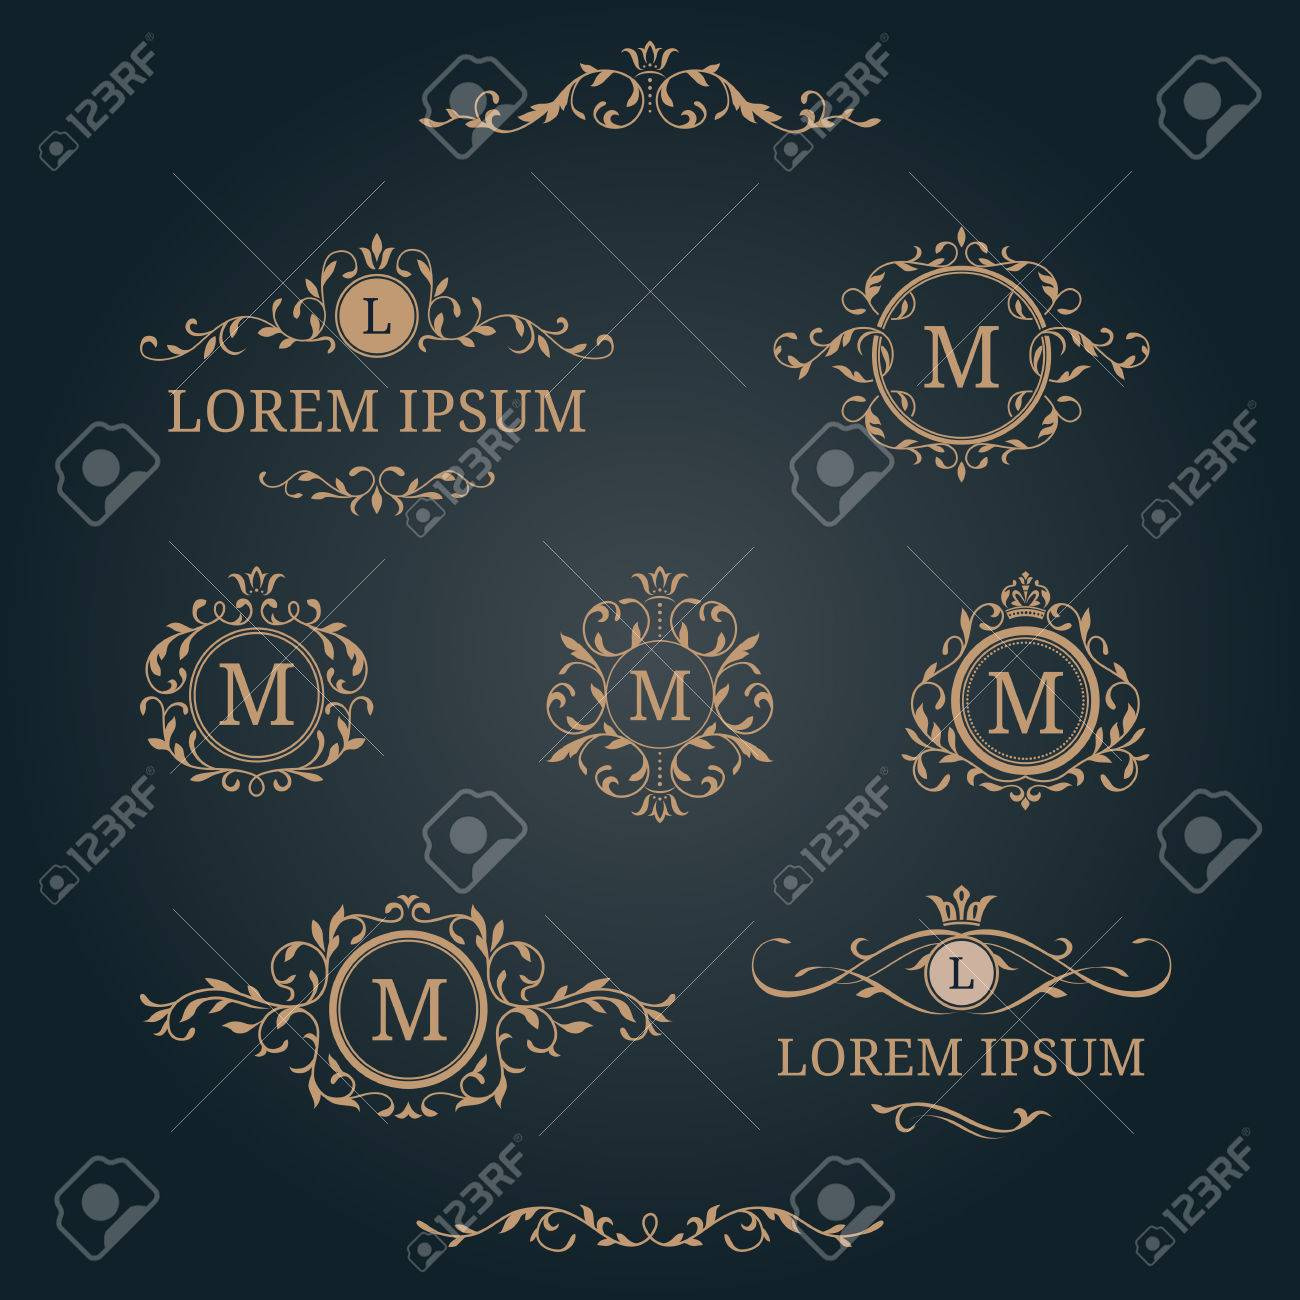 Elegant Floral Monograms And Borders. Design Templates For ...